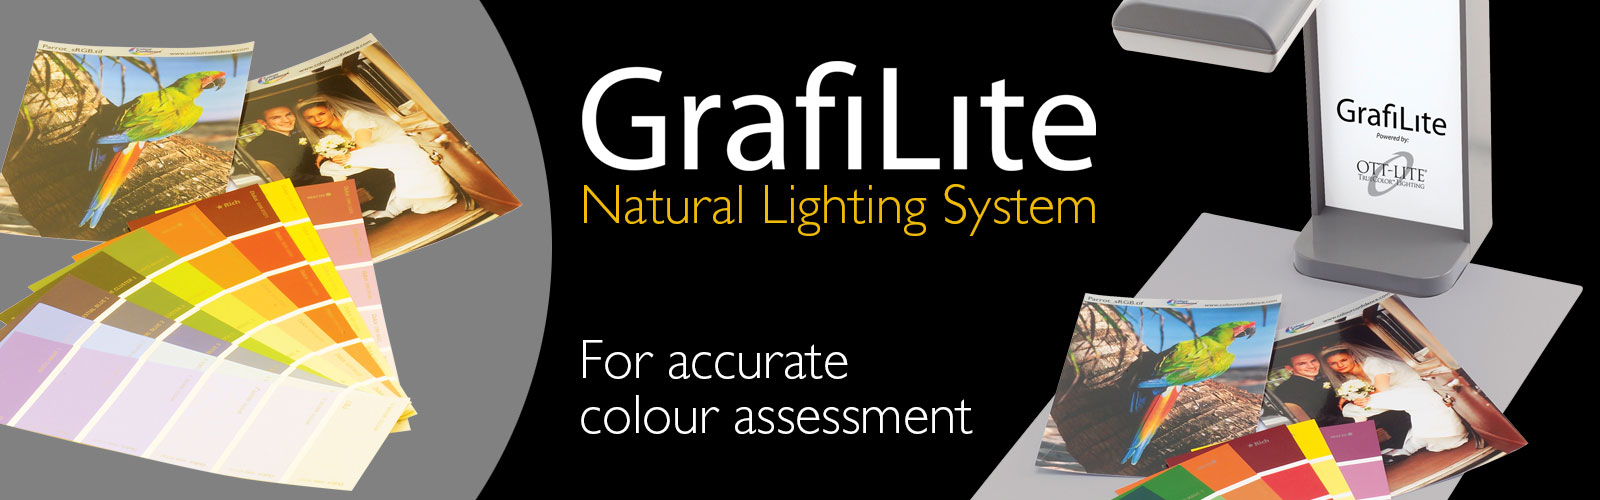 Grafilite - natural lighting system